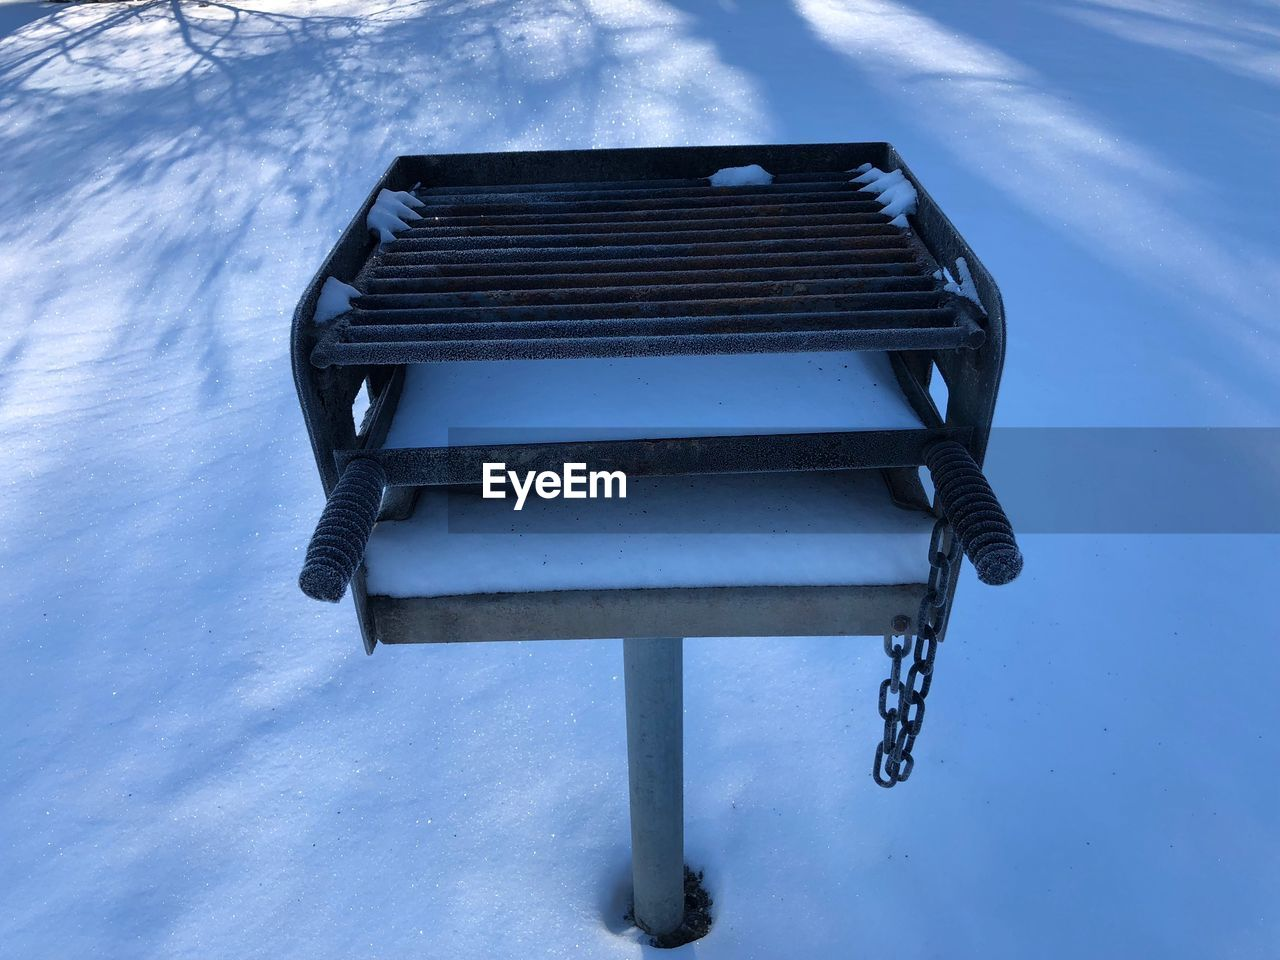 snow, cold temperature, winter, nature, blue, no people, seat, absence, empty, bench, day, outdoors, park bench, beauty in nature, tranquility, high angle view, park, frozen, wood - material